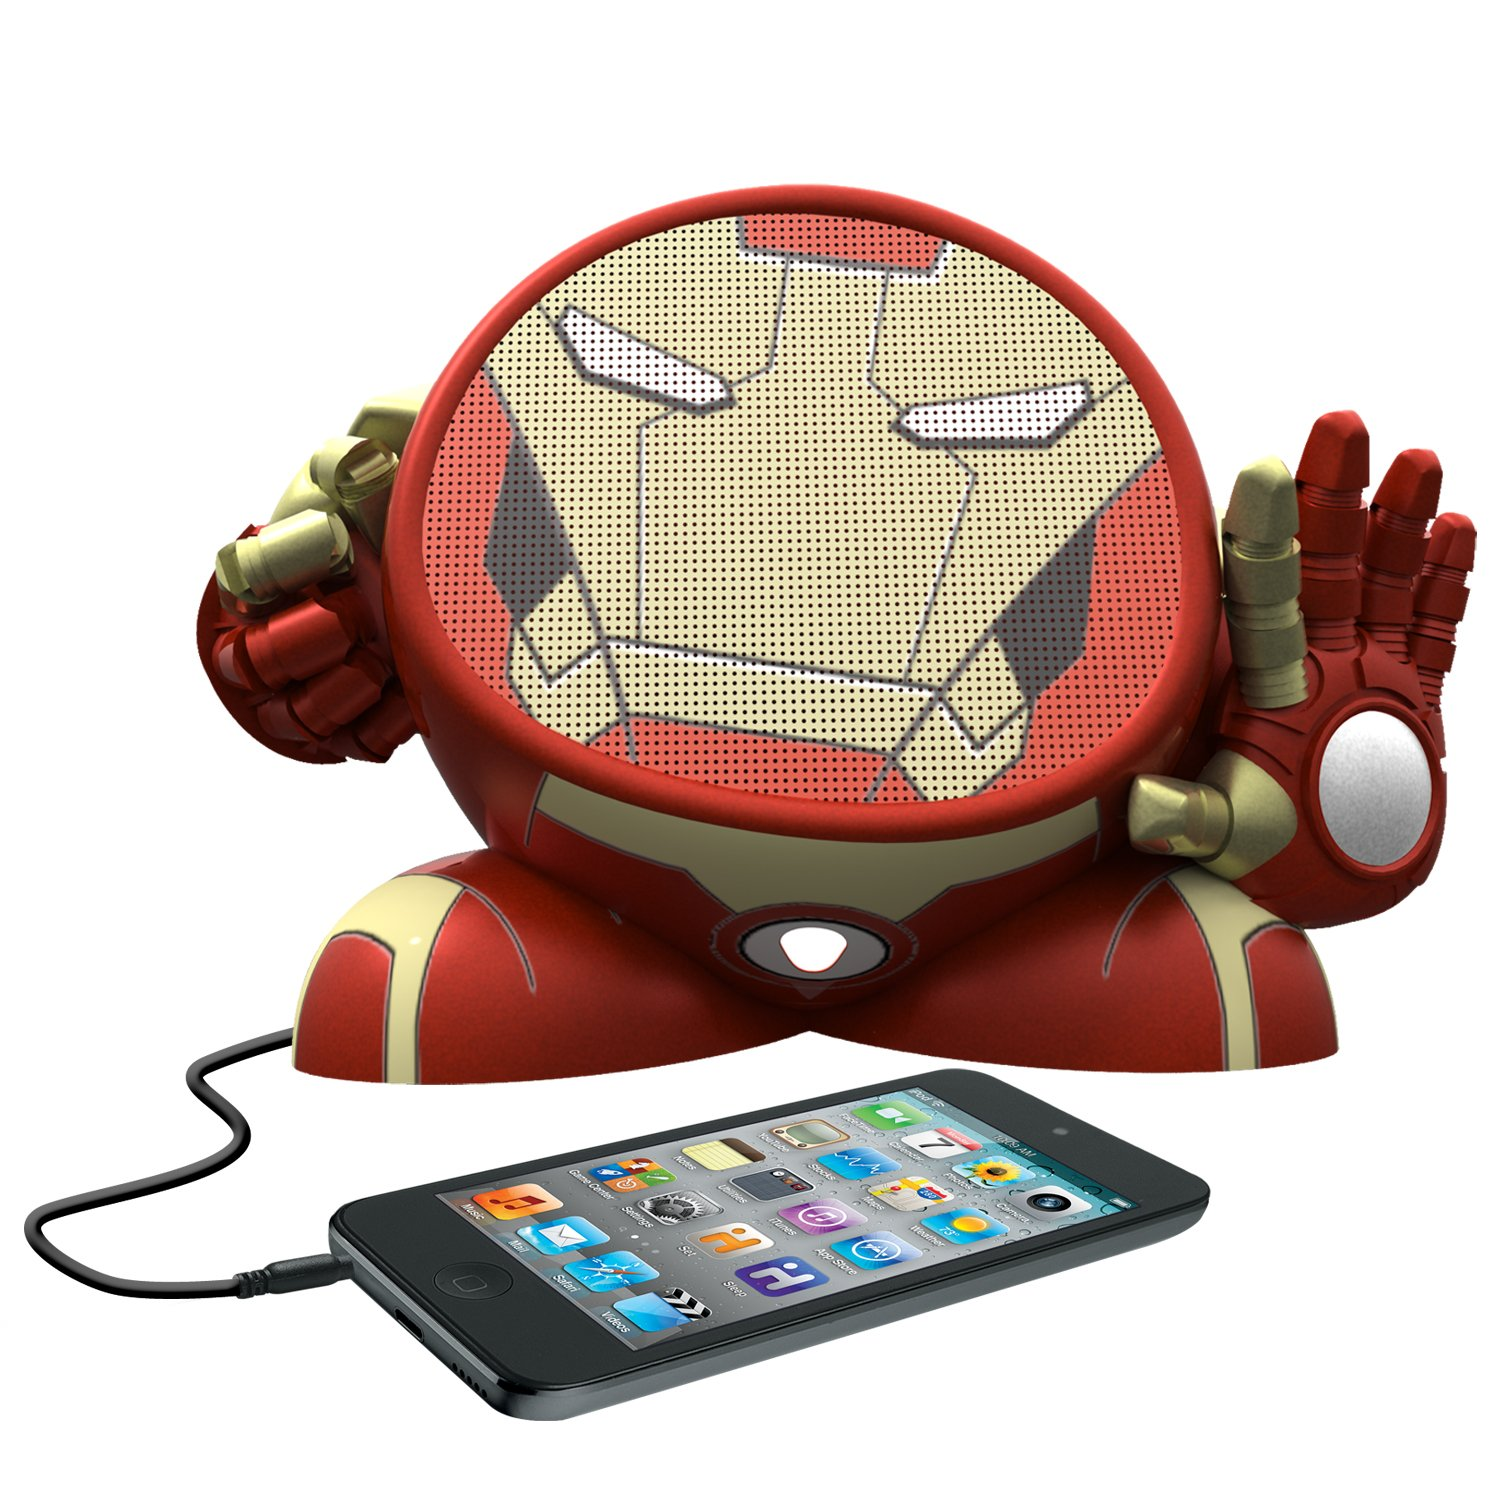 Avengers Iron Man Rechargeable Character Speaker, MR-M662 by eKids